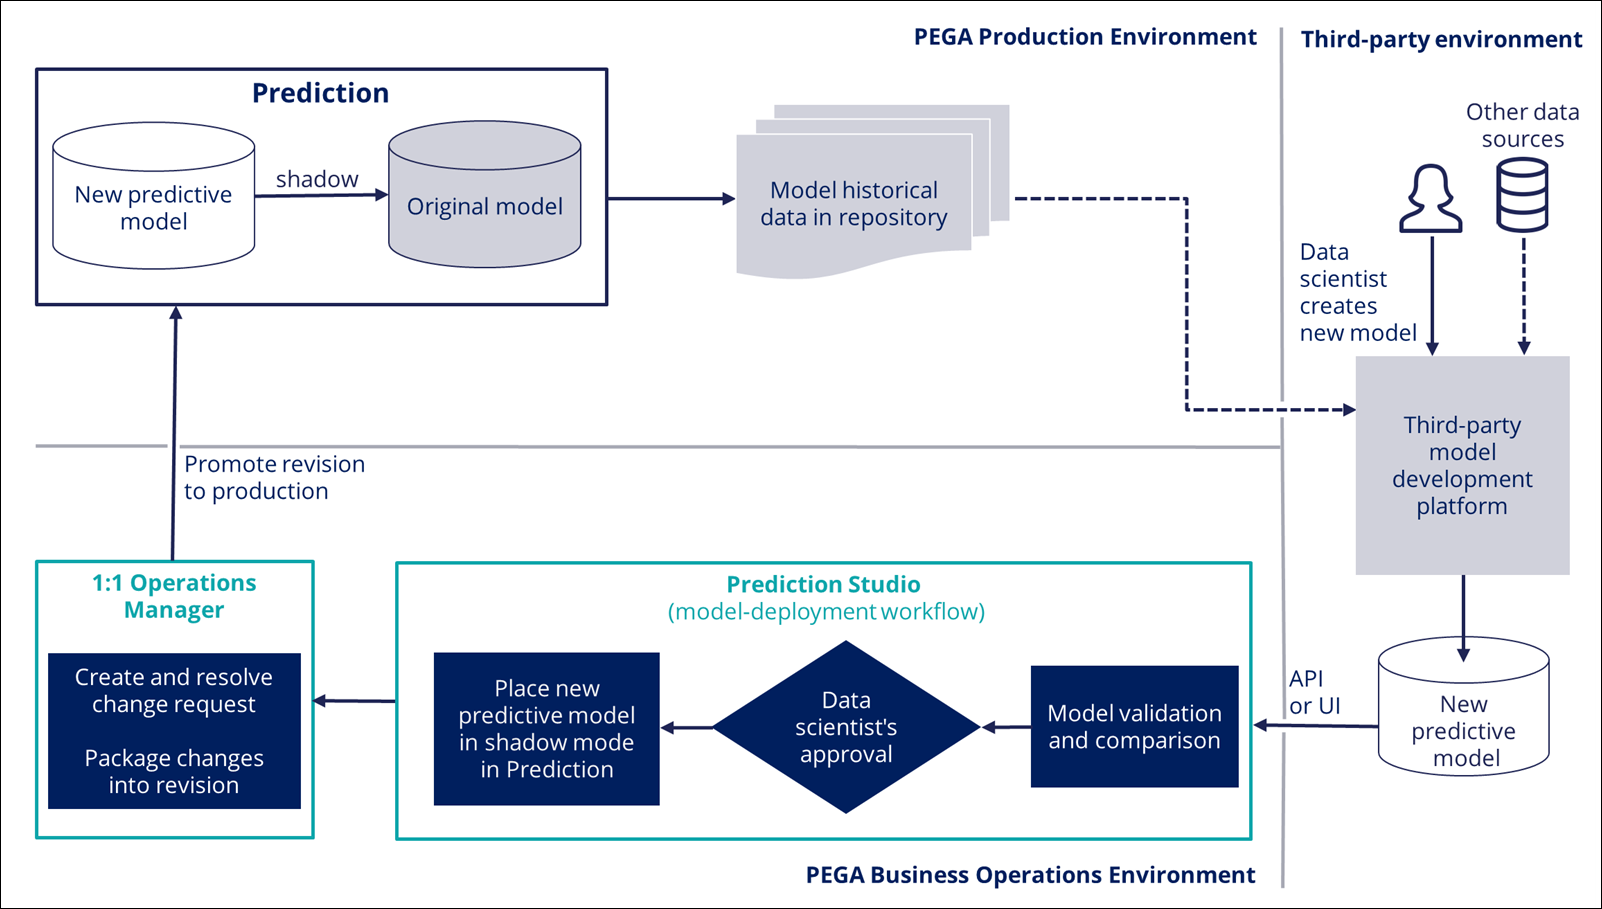 A model update process in an environment with Pega Customer Decision Hub                         and Pega 1 to 1 Operations Manager, showing the workflow from third-party                         environment through BOE to production.